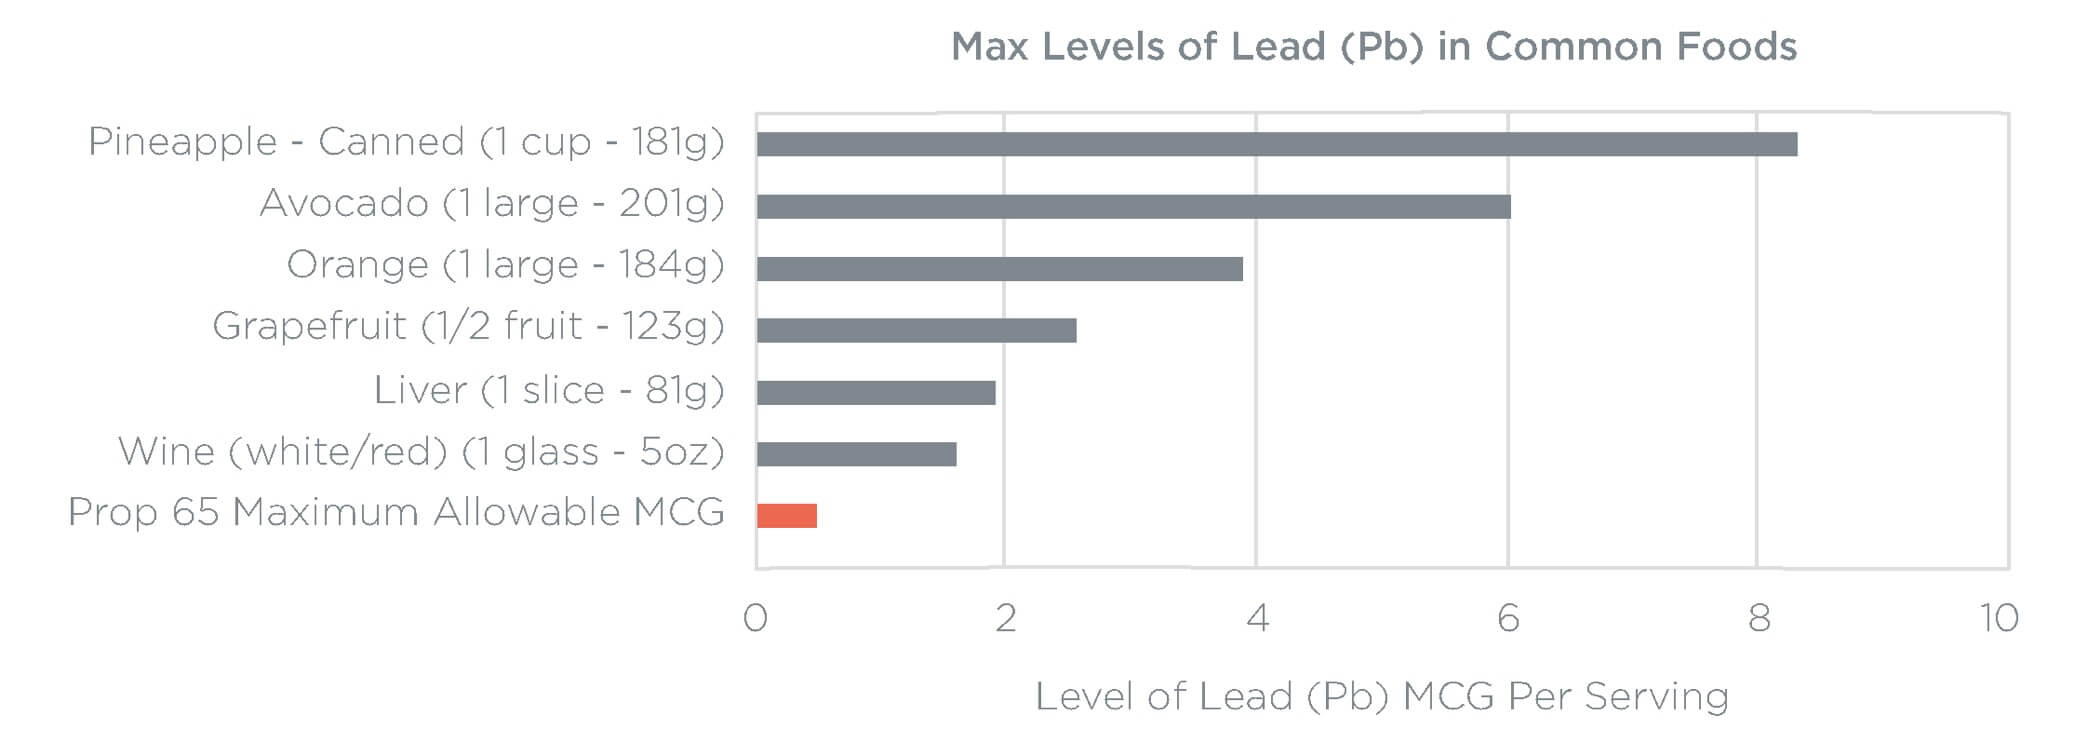 Max Levels of Lead in Common Foods